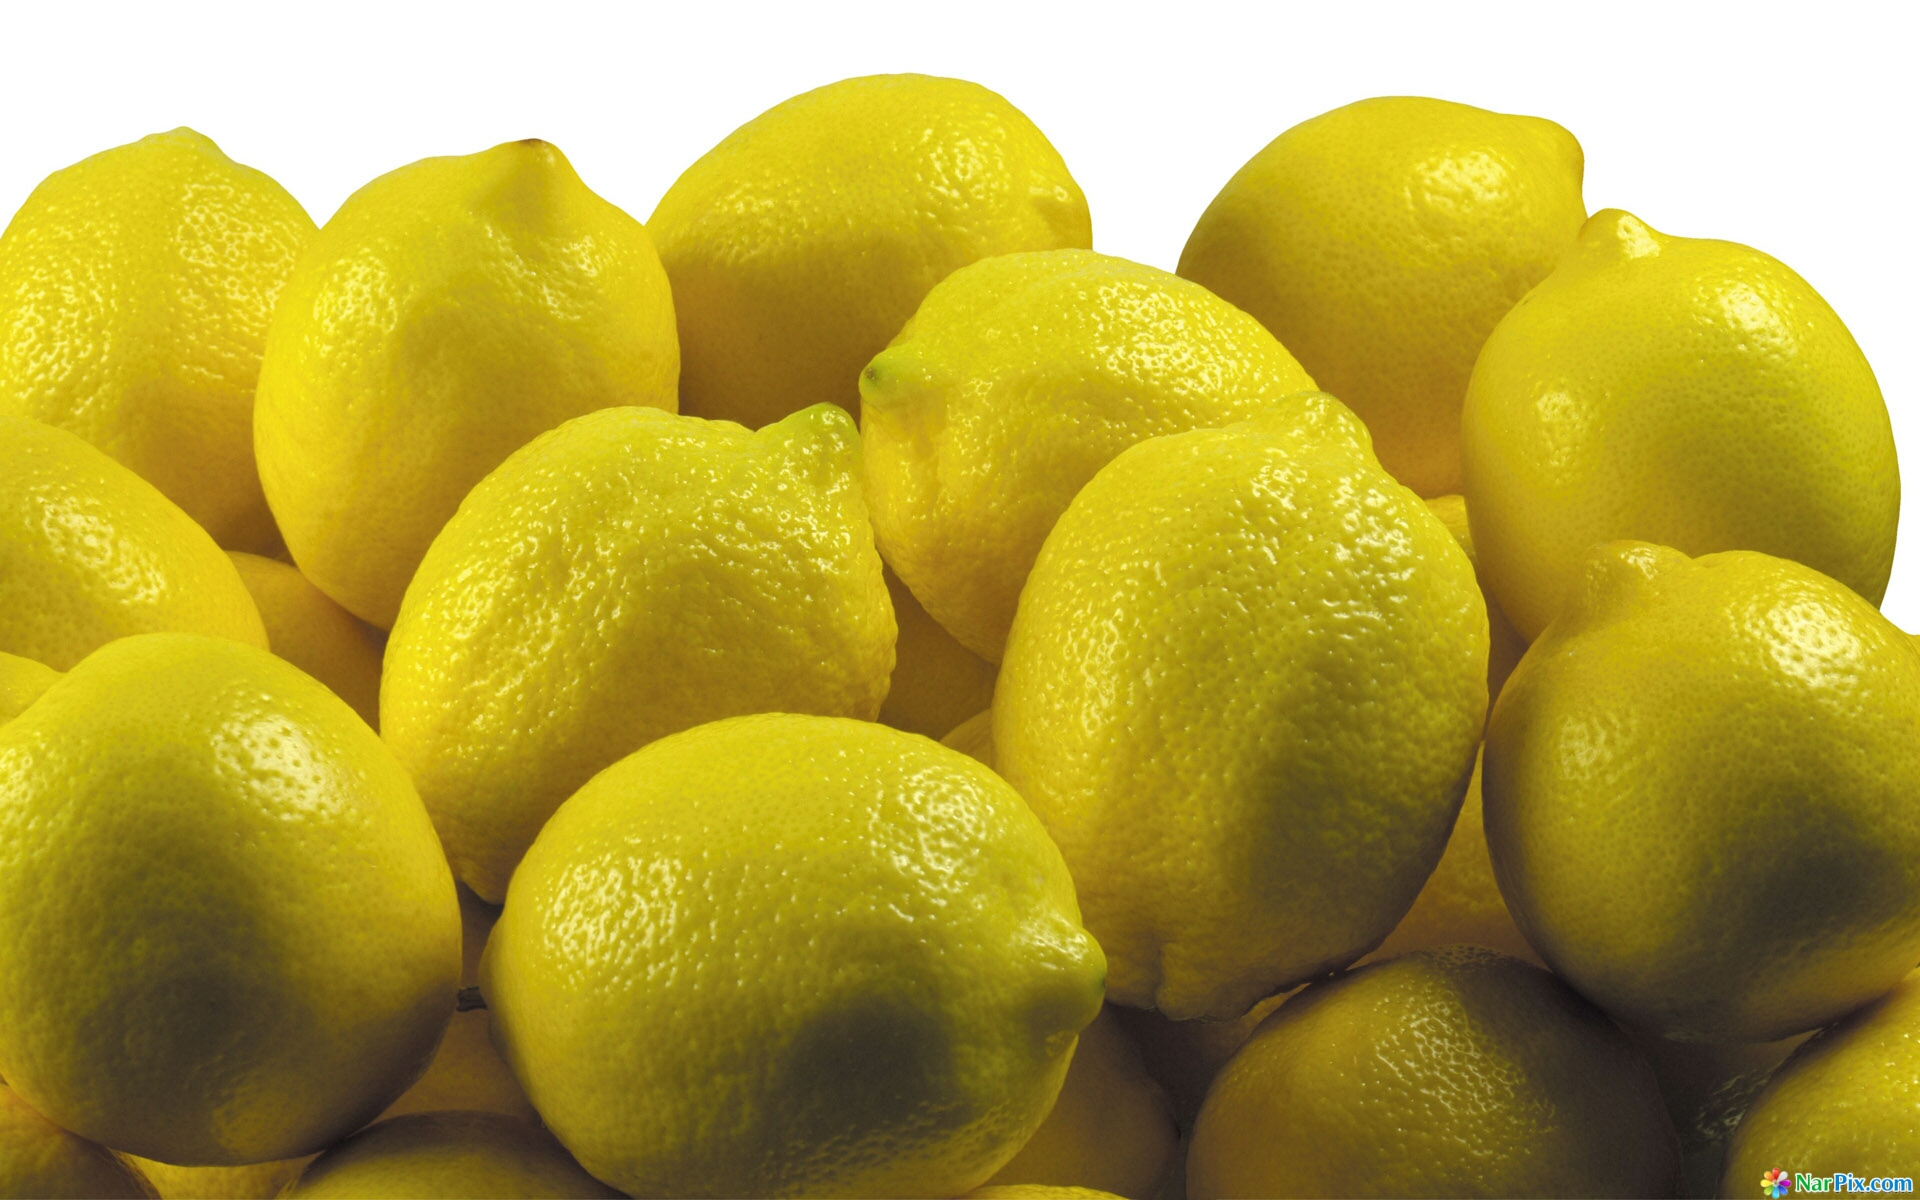 Lemon Computer Wallpapers, Desktop Backgrounds | 1920x1200 ...